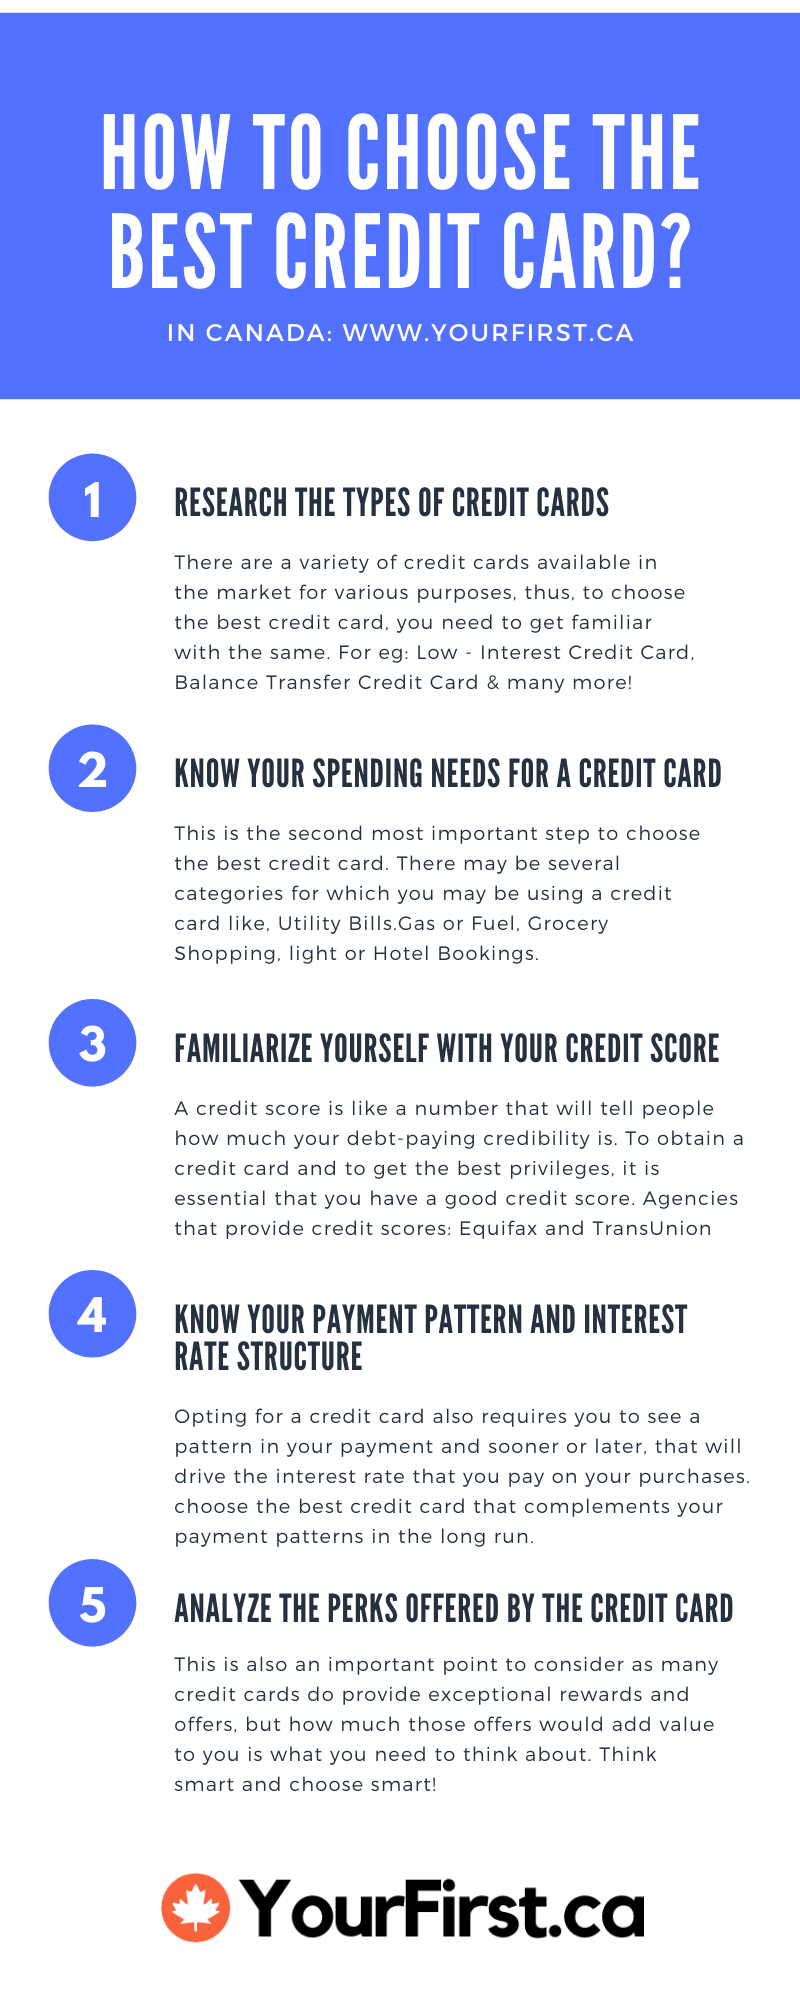 Infographic - How To Choose The Best Credit Card In Canada